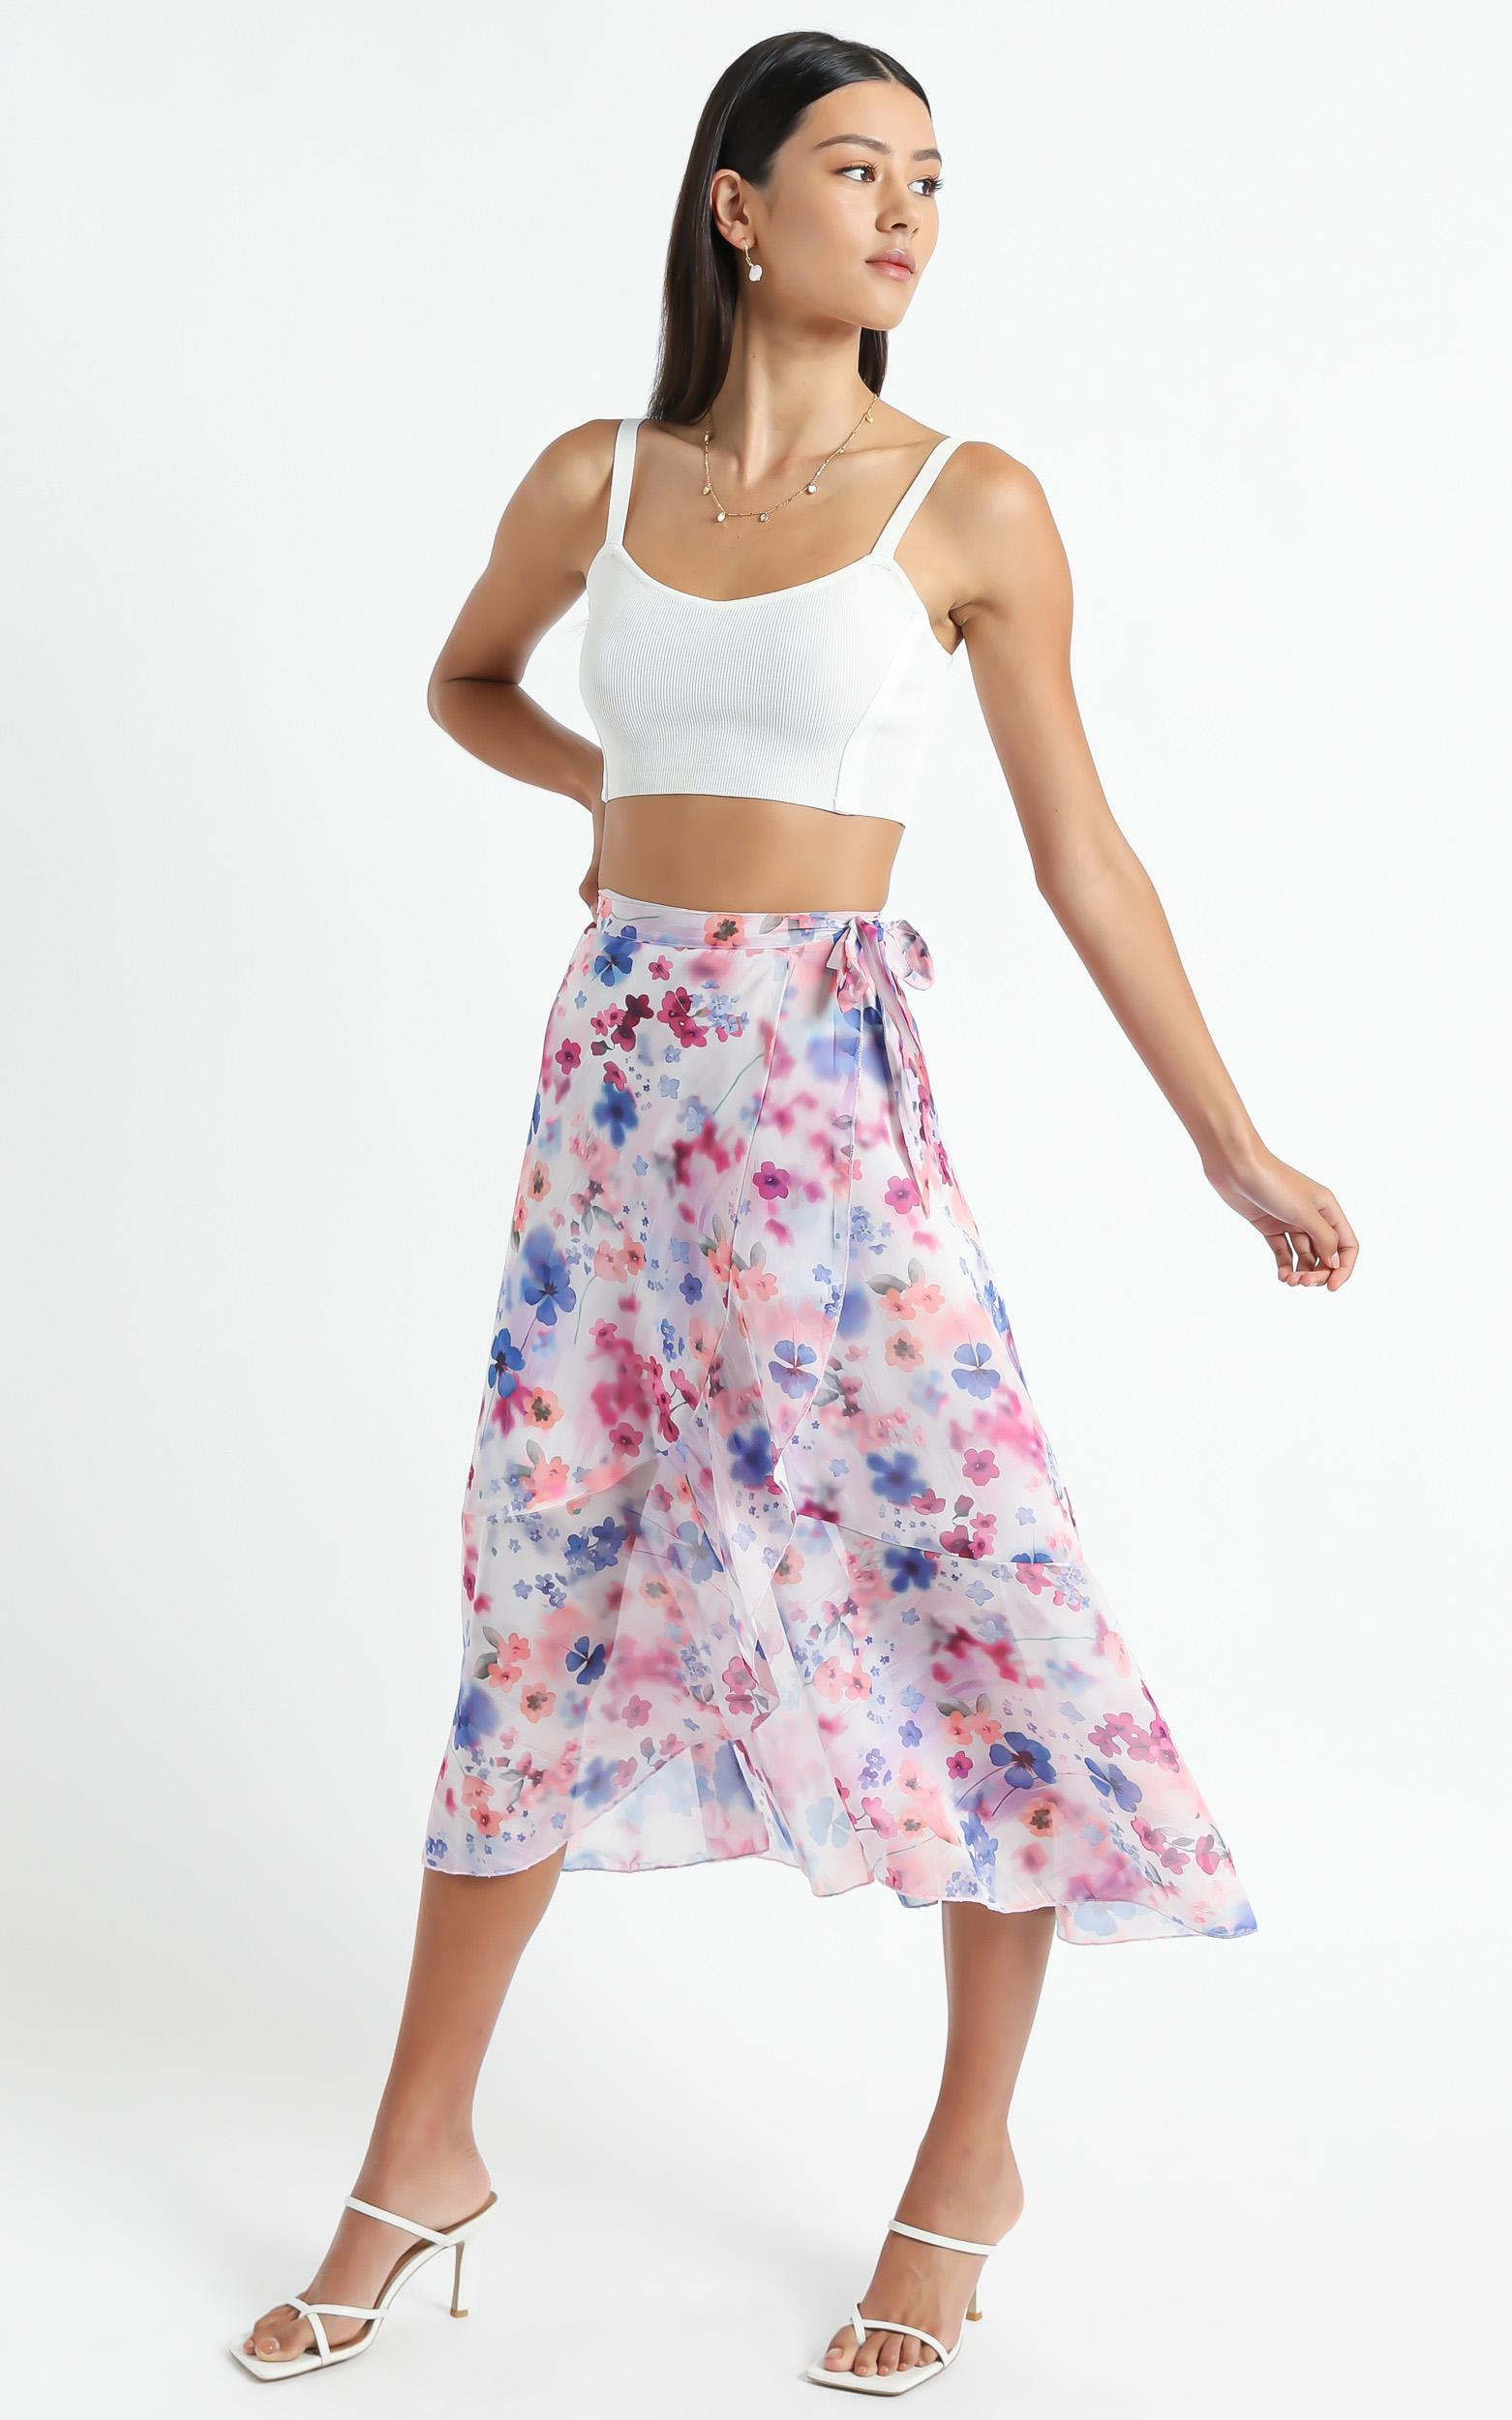 Add To The Mix Skirt in Blur Floral - 4 (XXS), Multi, hi-res image number null